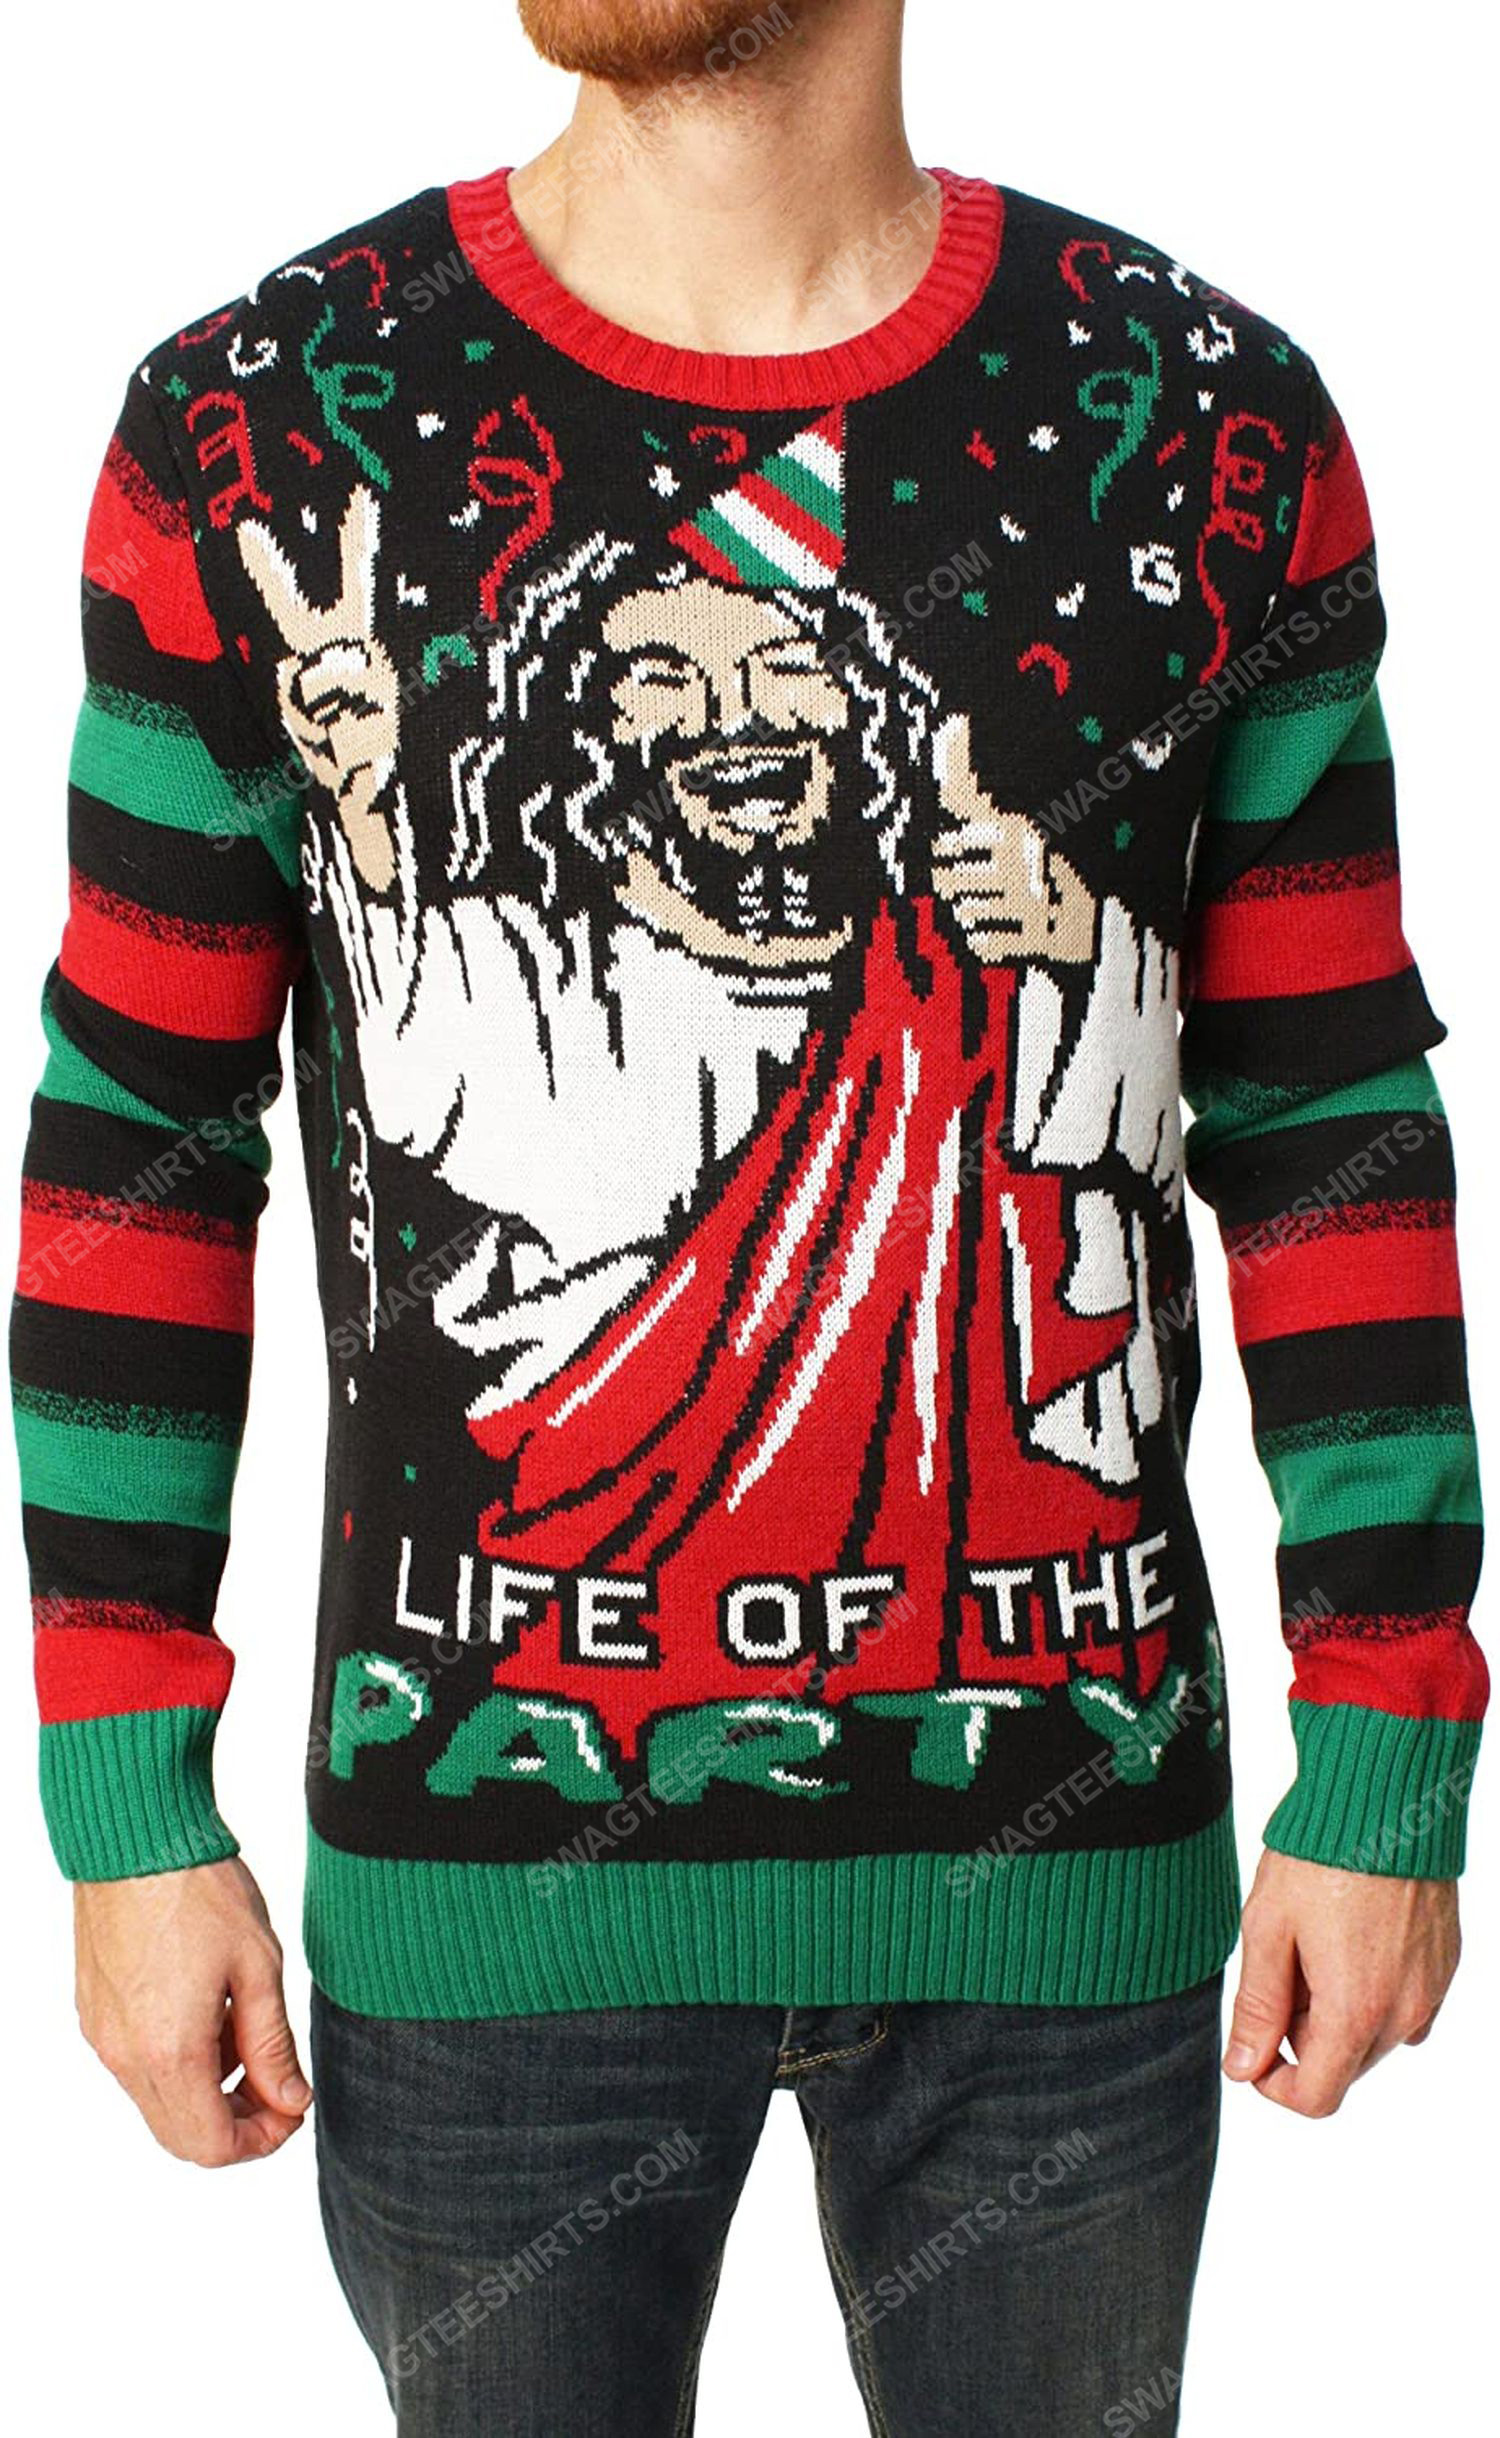 Life of the party full print ugly christmas sweater 2 - Copy